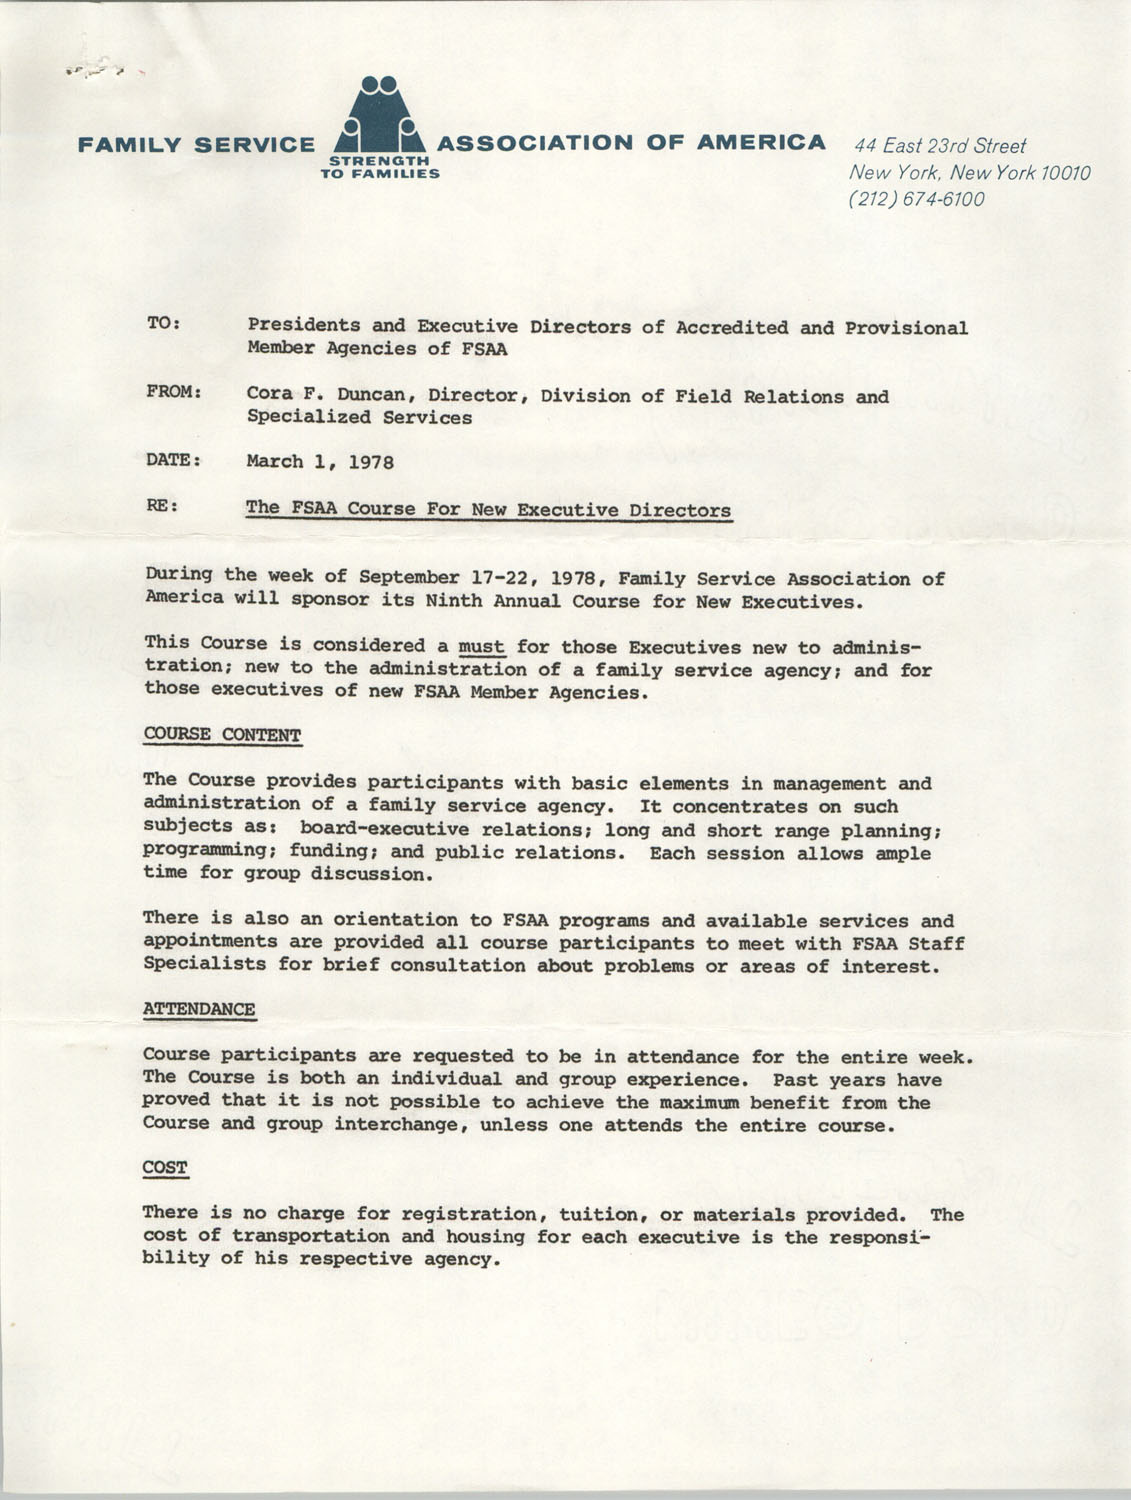 Memorandum from Cora F. Duncan to Presidents and Executive Directors of Accredited and Provisional Member Agencies of FSAA, March 1, 1978